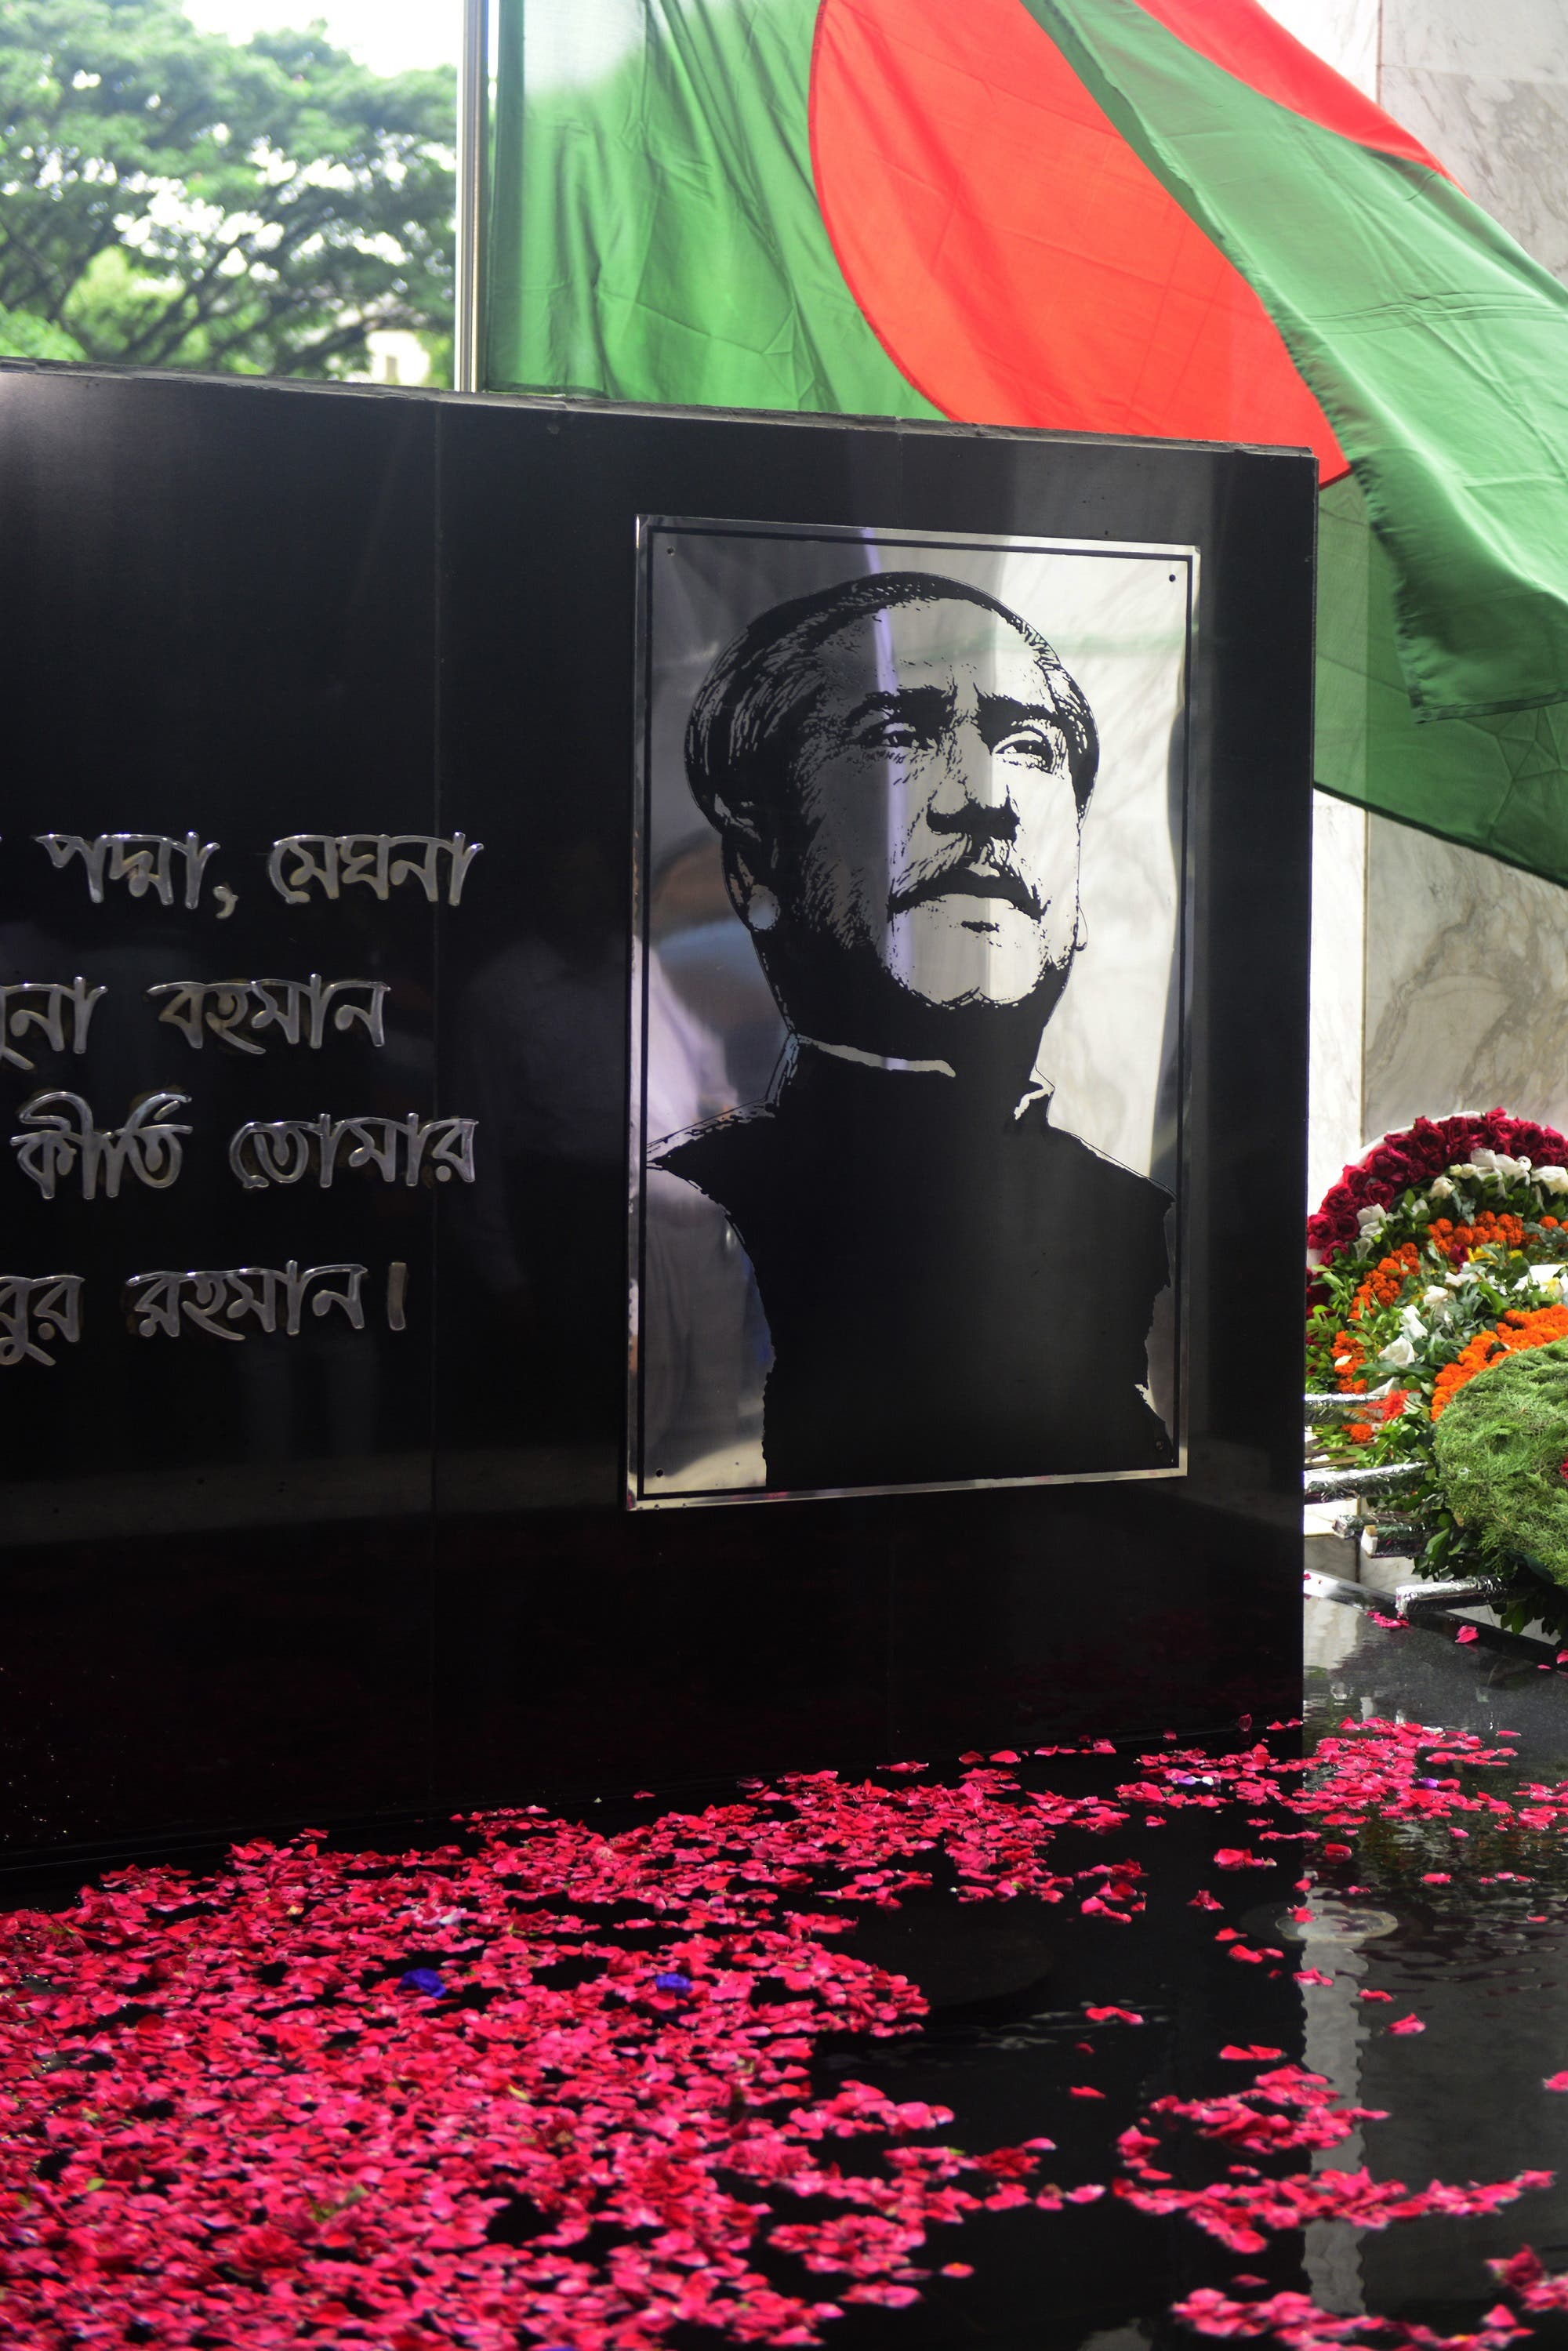 The Sheikh Mujibur Rahman Memorial is covered with flower petals in Dhaka on August 15, 2013. (AFP)